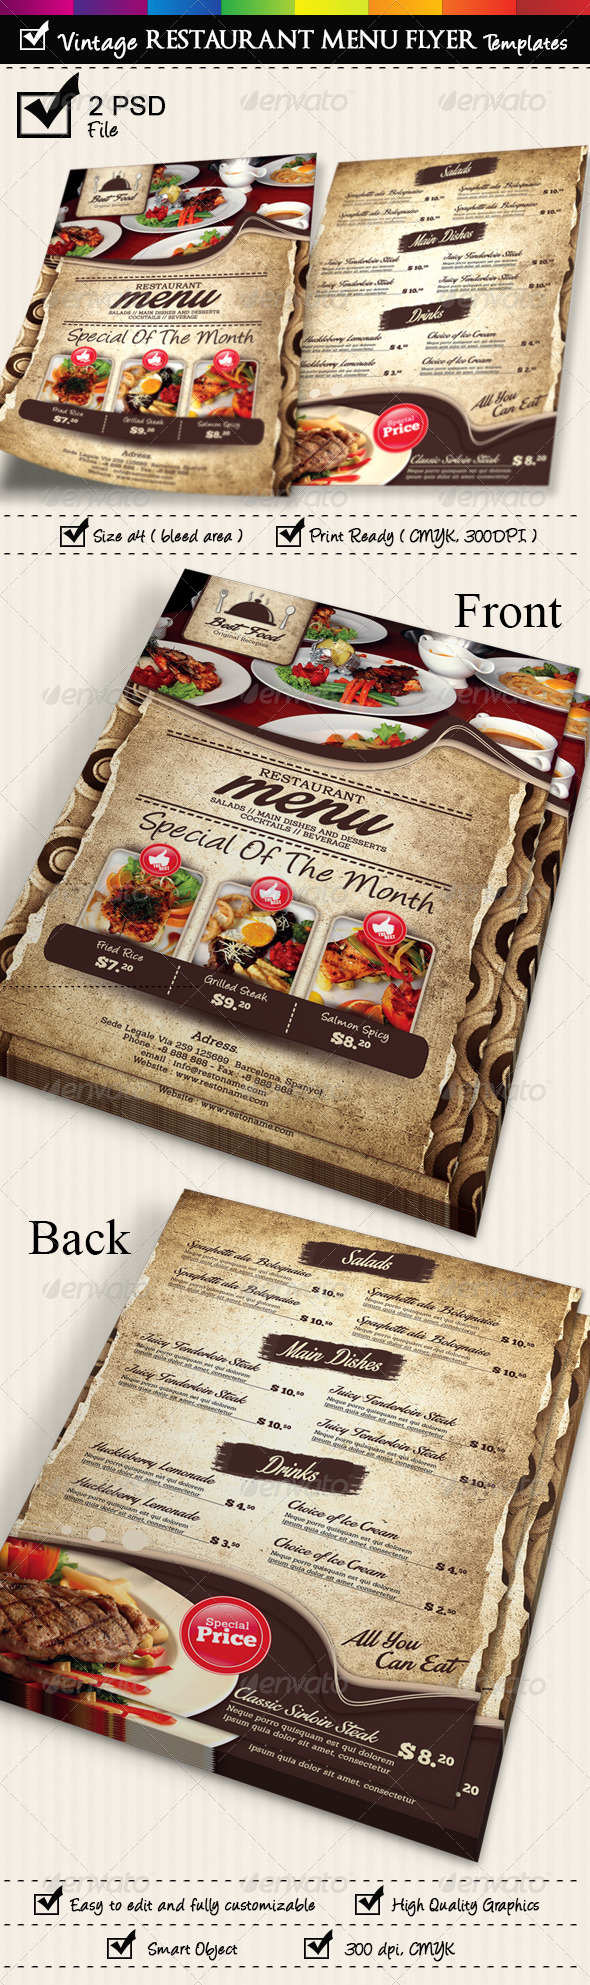 Restaurant Menu Flyer Templates Vintage Texture - Restaurant Flyers